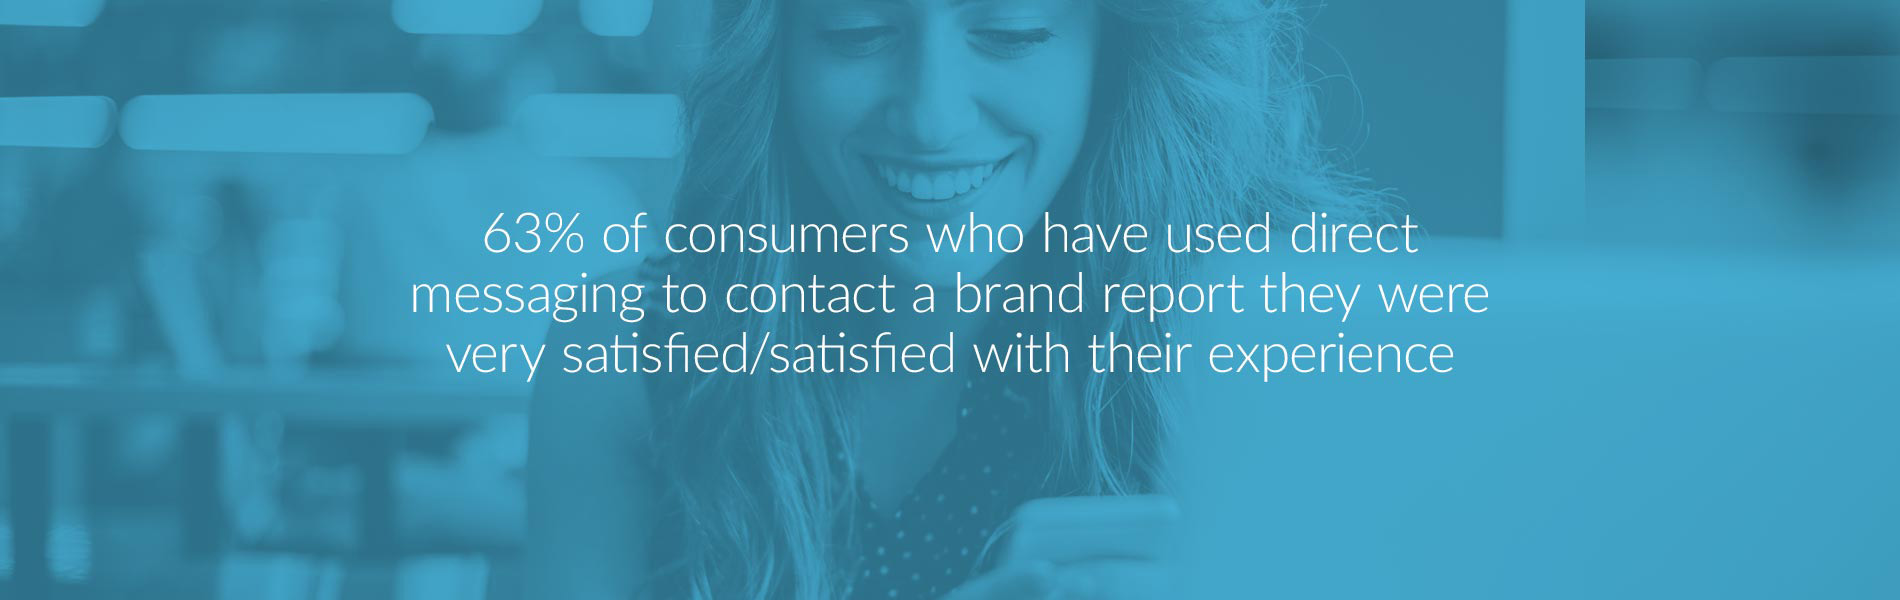 63% of consumers who have used direct messaging to contact a brand report they were very satisfied/satisfied with their experience.